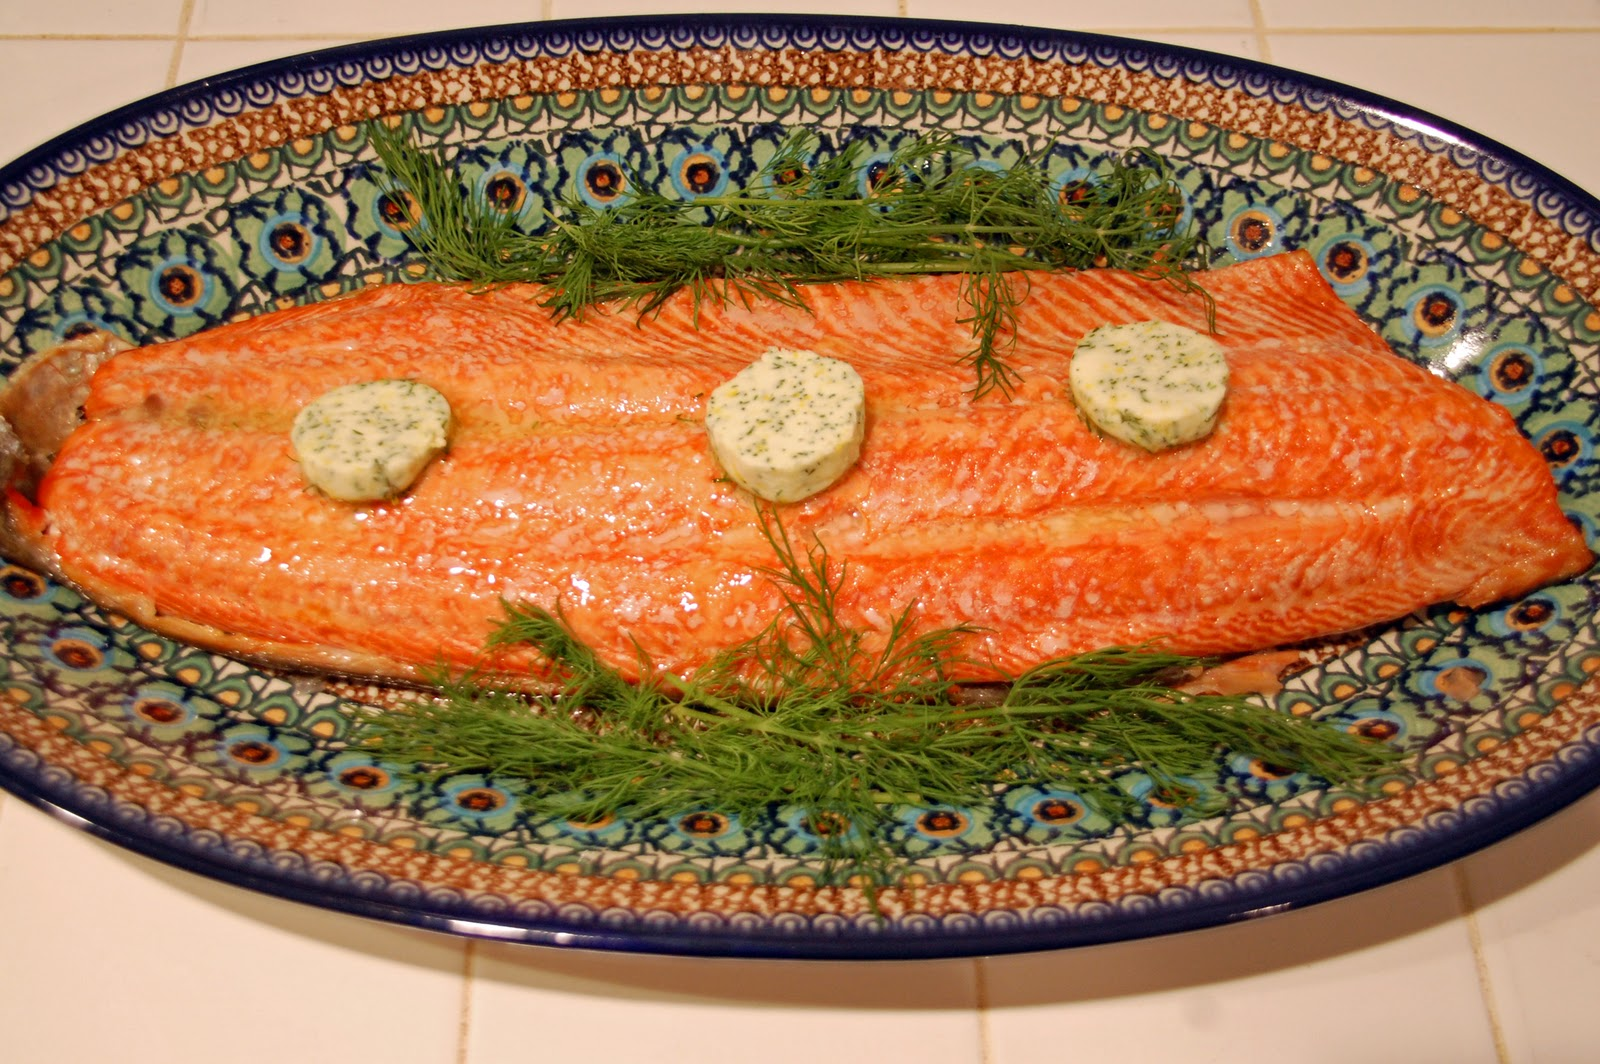 Southern Lady's Recipes: Roasted Salmon with Lemon Dill Butter